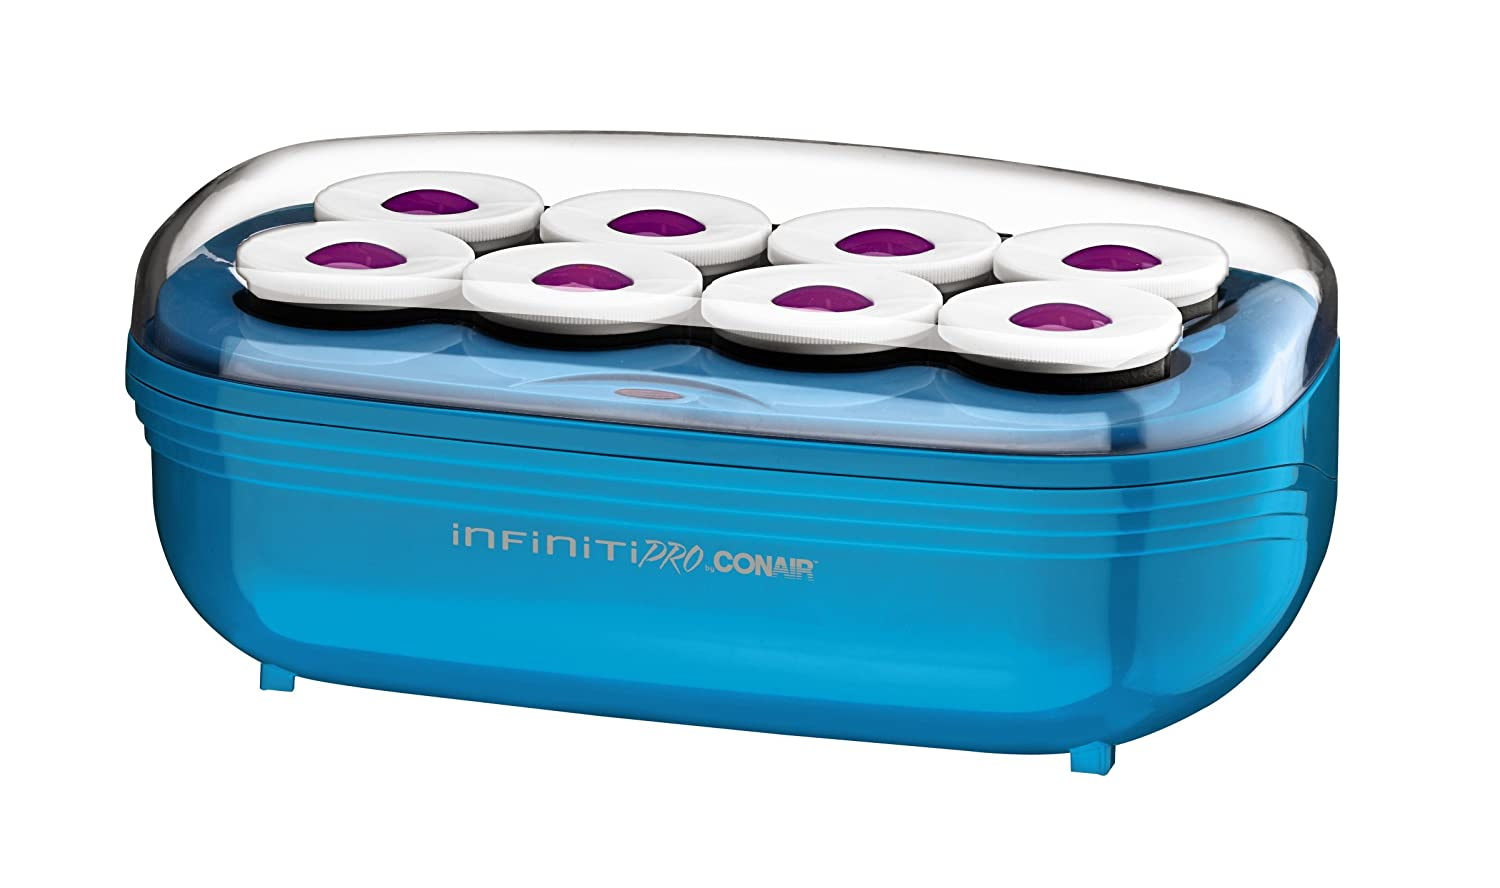 INFINITIPRO BY CONAIR Instant Heat Toumaline Ceramic Flocked Hot Rollers; 2-inch for Mega Volume and Smooth Waves CHV28